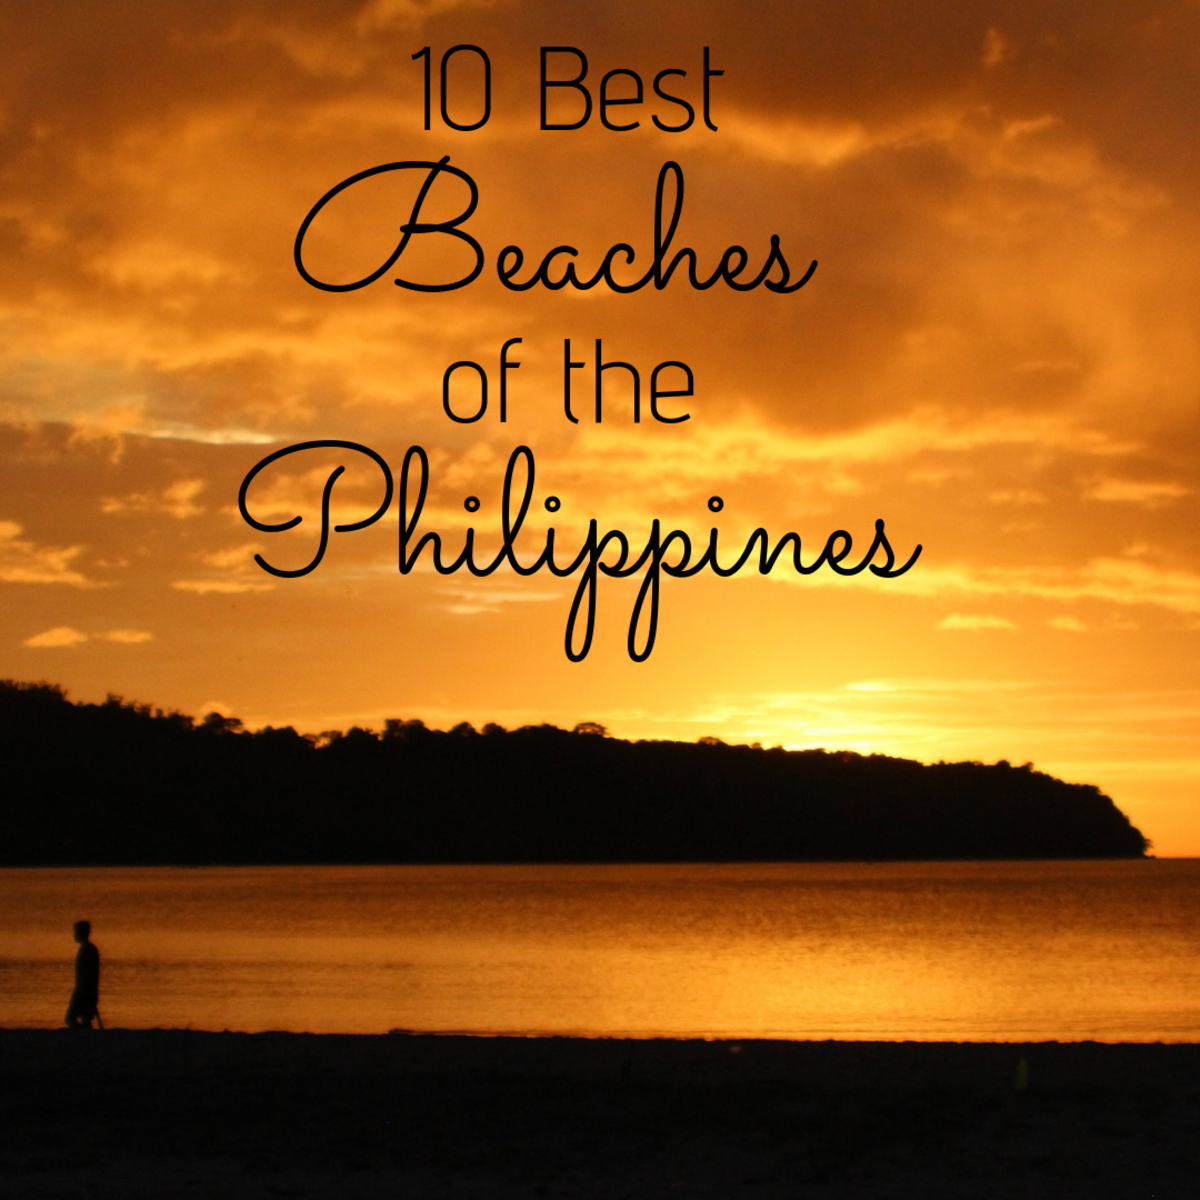 This article will break down 10 of the most beautiful beaches found across the Philippines islands.